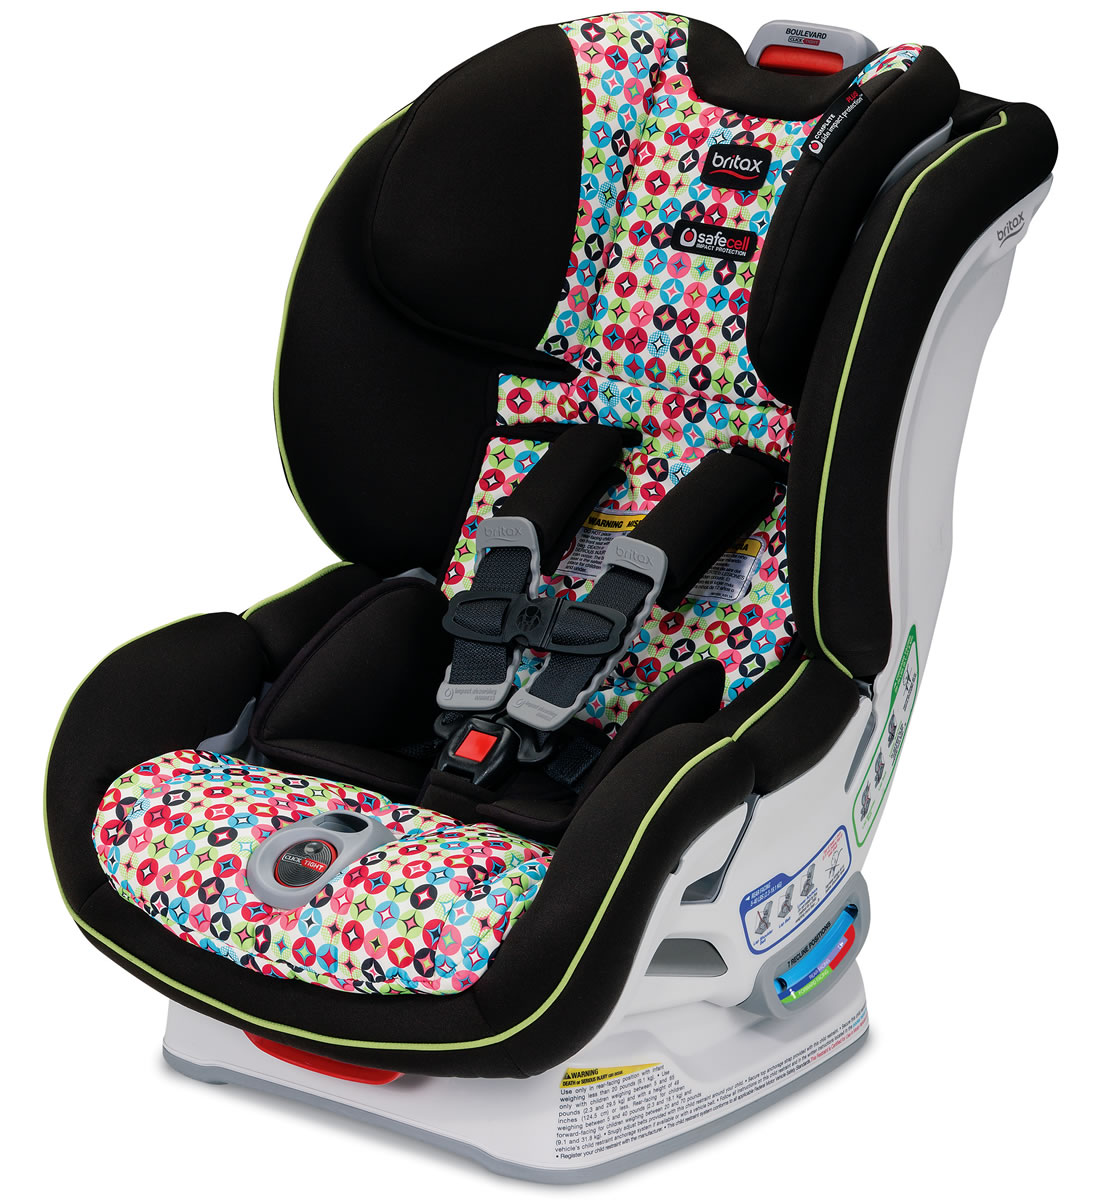 britax boulevard clicktight convertible car seat kaleidoscope. Black Bedroom Furniture Sets. Home Design Ideas